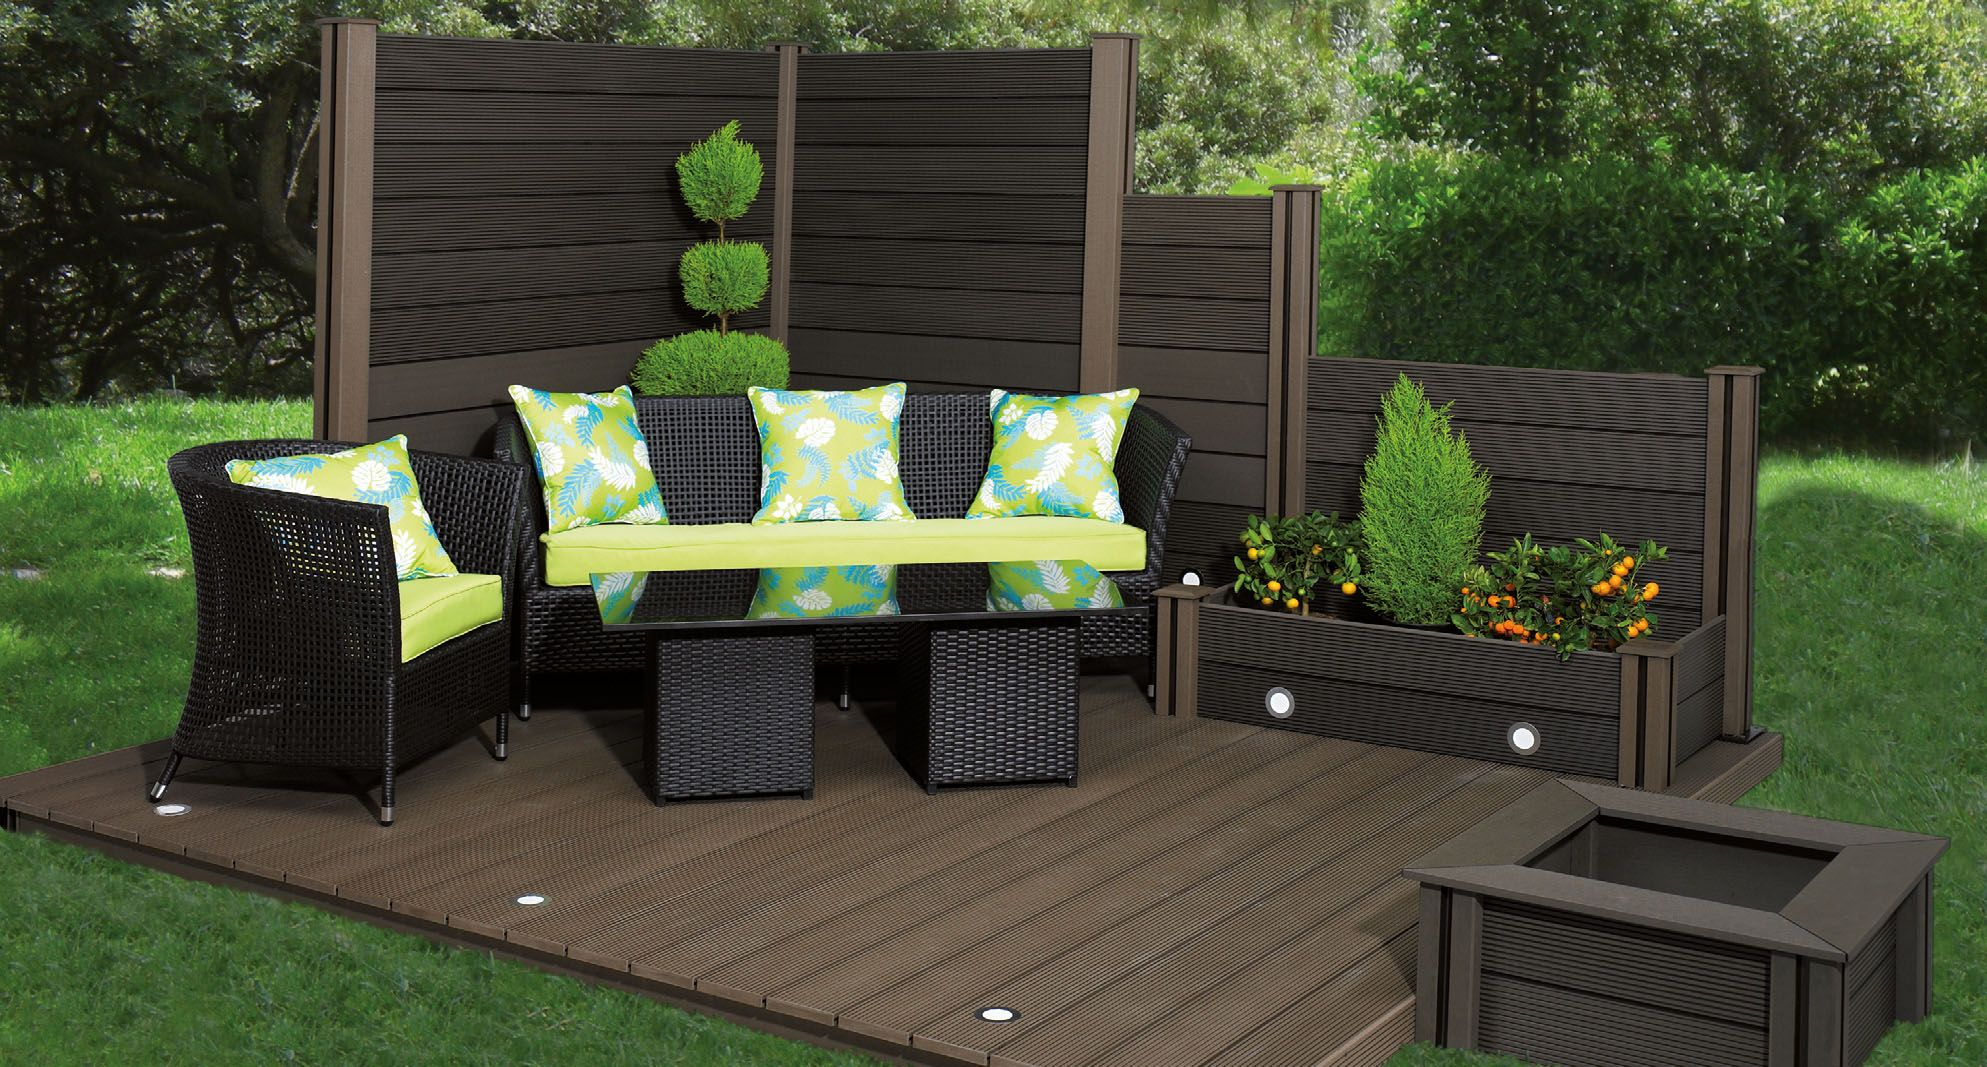 pin von martin kleine auf garten garten terrassendielen und wpc terrassendielen. Black Bedroom Furniture Sets. Home Design Ideas